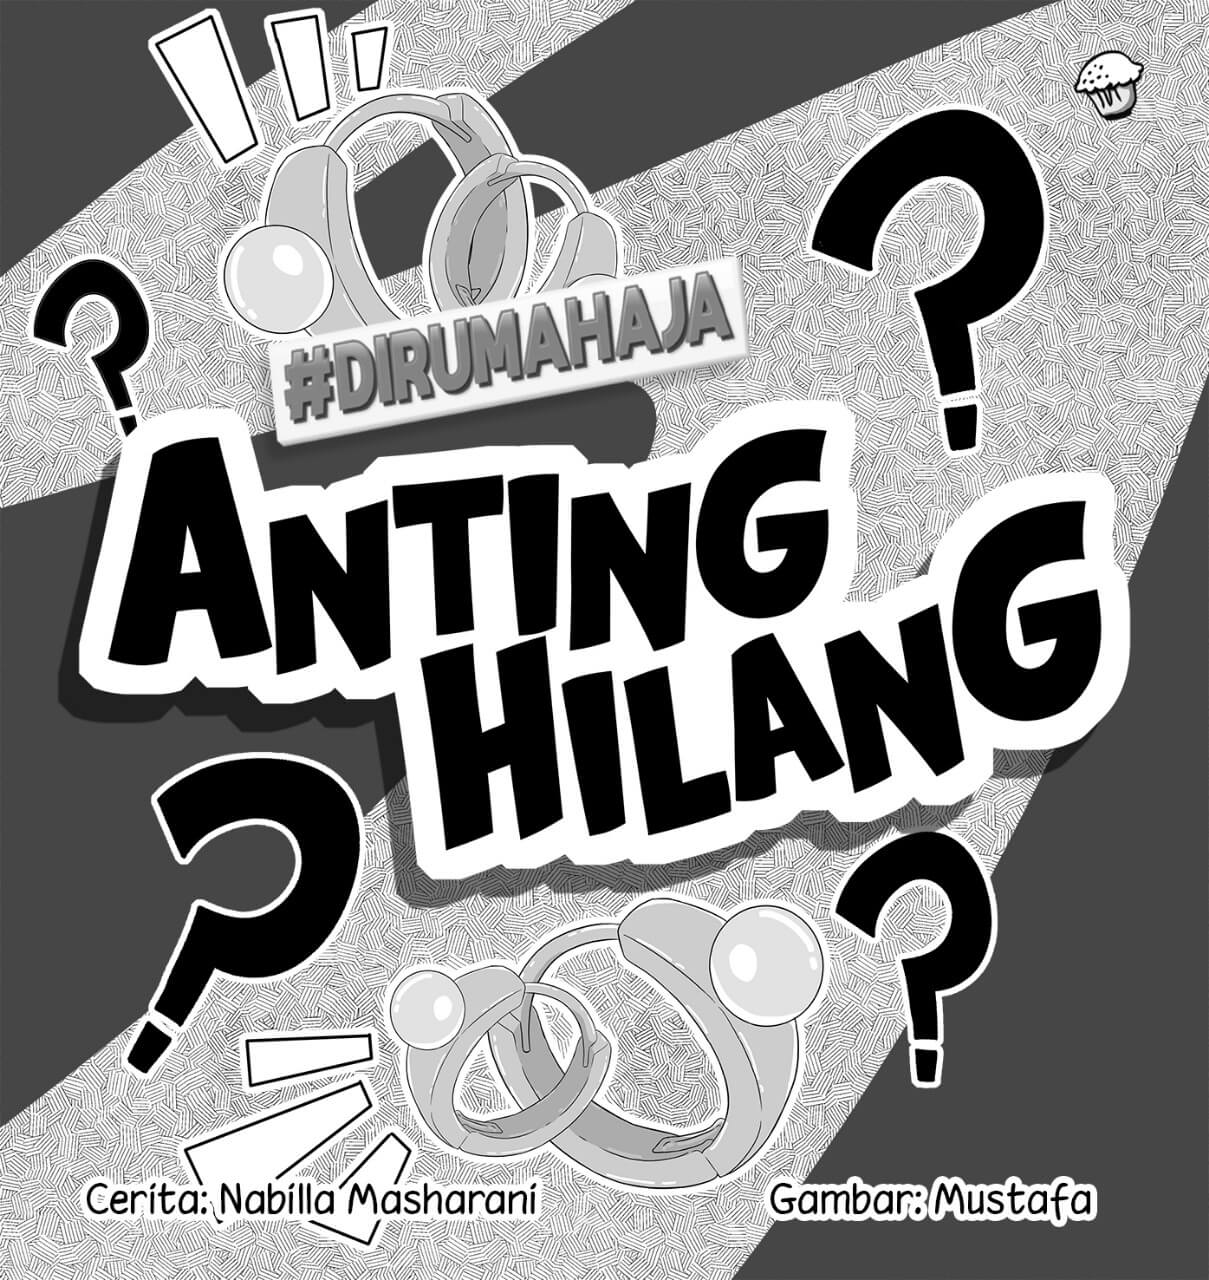 Anting Hilang Cover BW